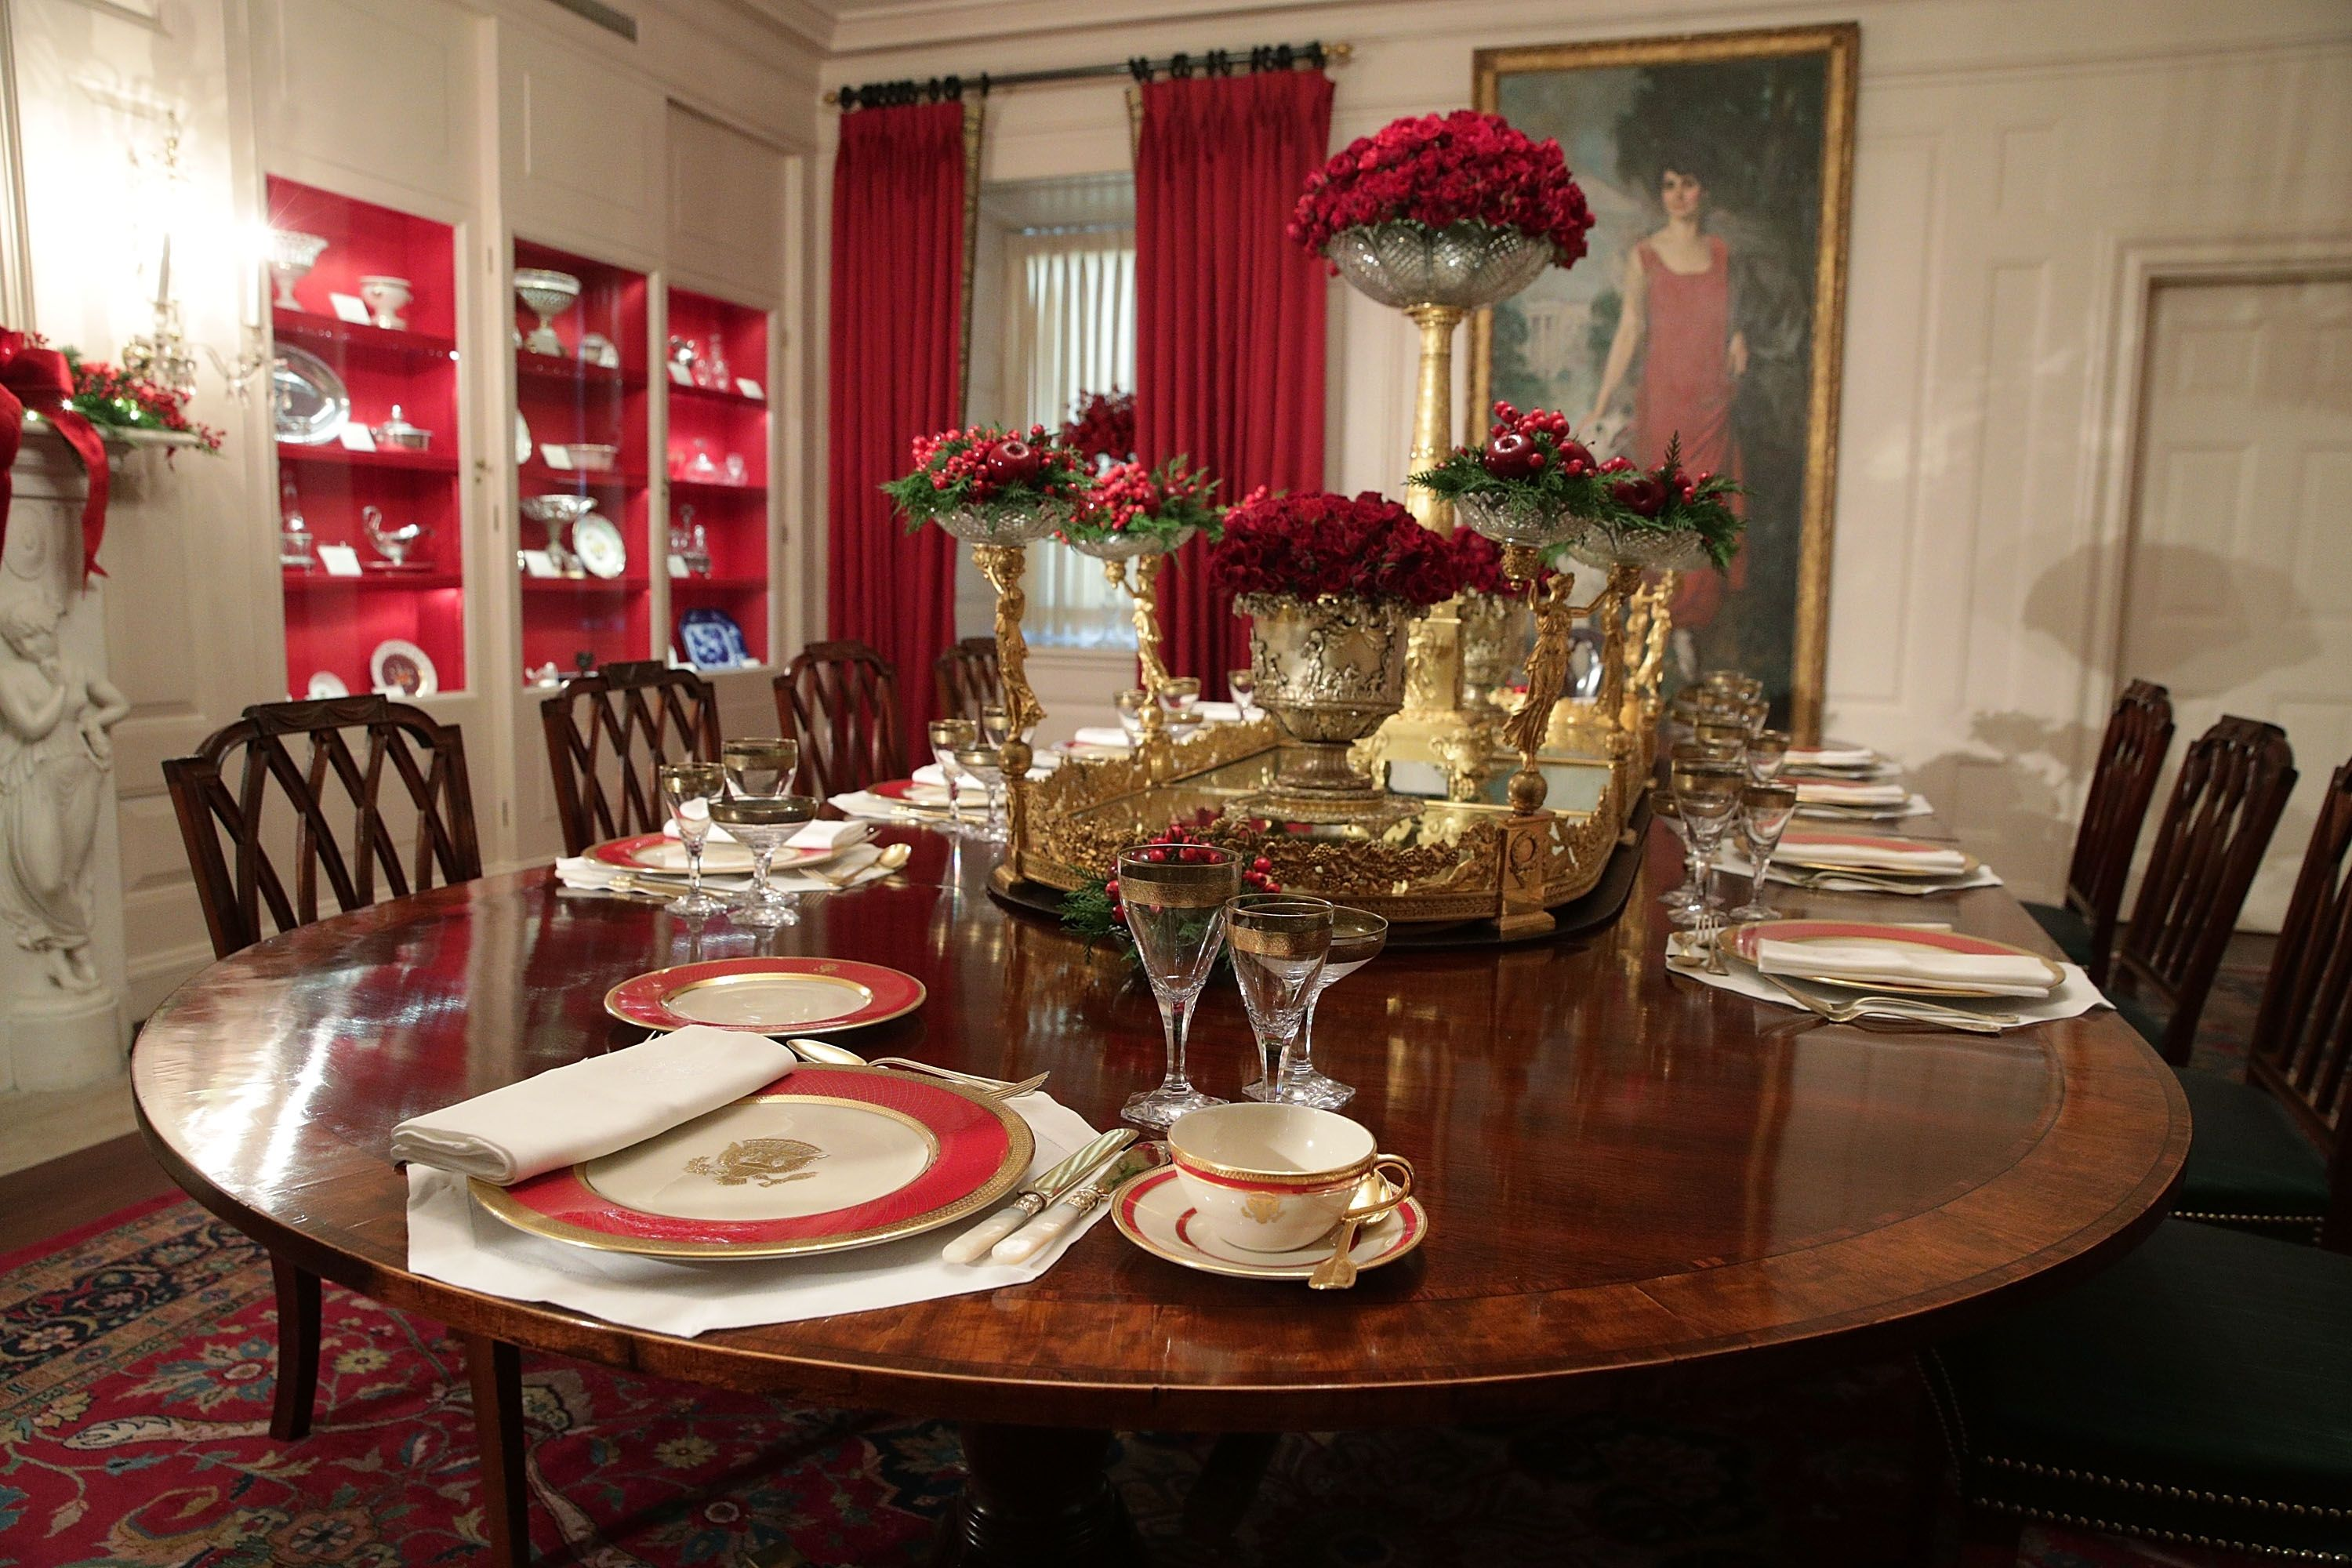 white-house-christmas-decorations-china-room-1511801261.jpg